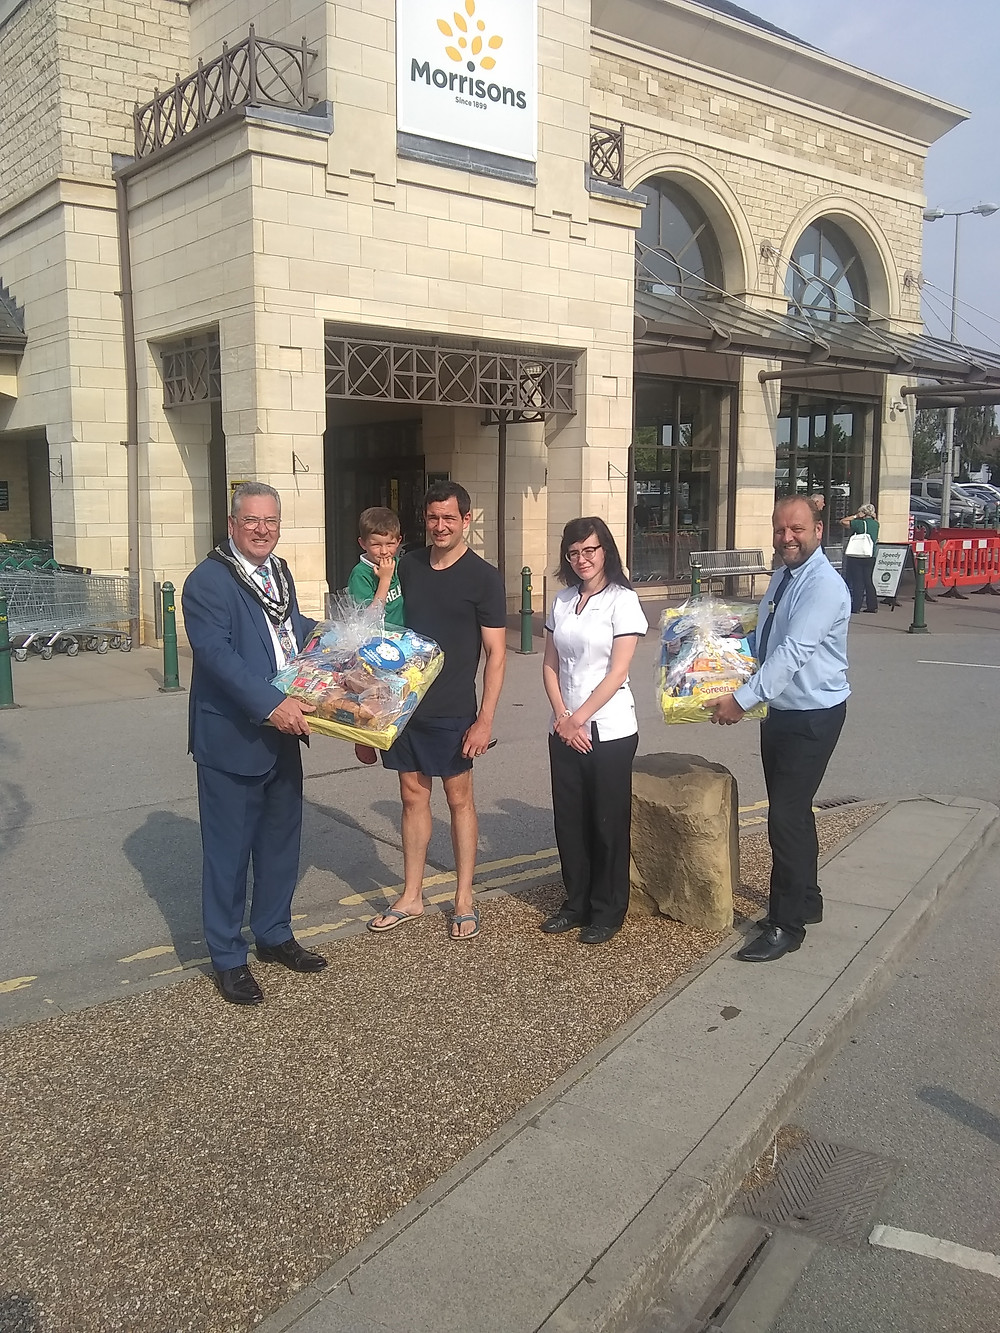 Wetherby Town Mayor, Neil O'Byrne, Connal Kelly and Leah Robinson (Boots representative), and Morrison's Store Manager, Paul Saville